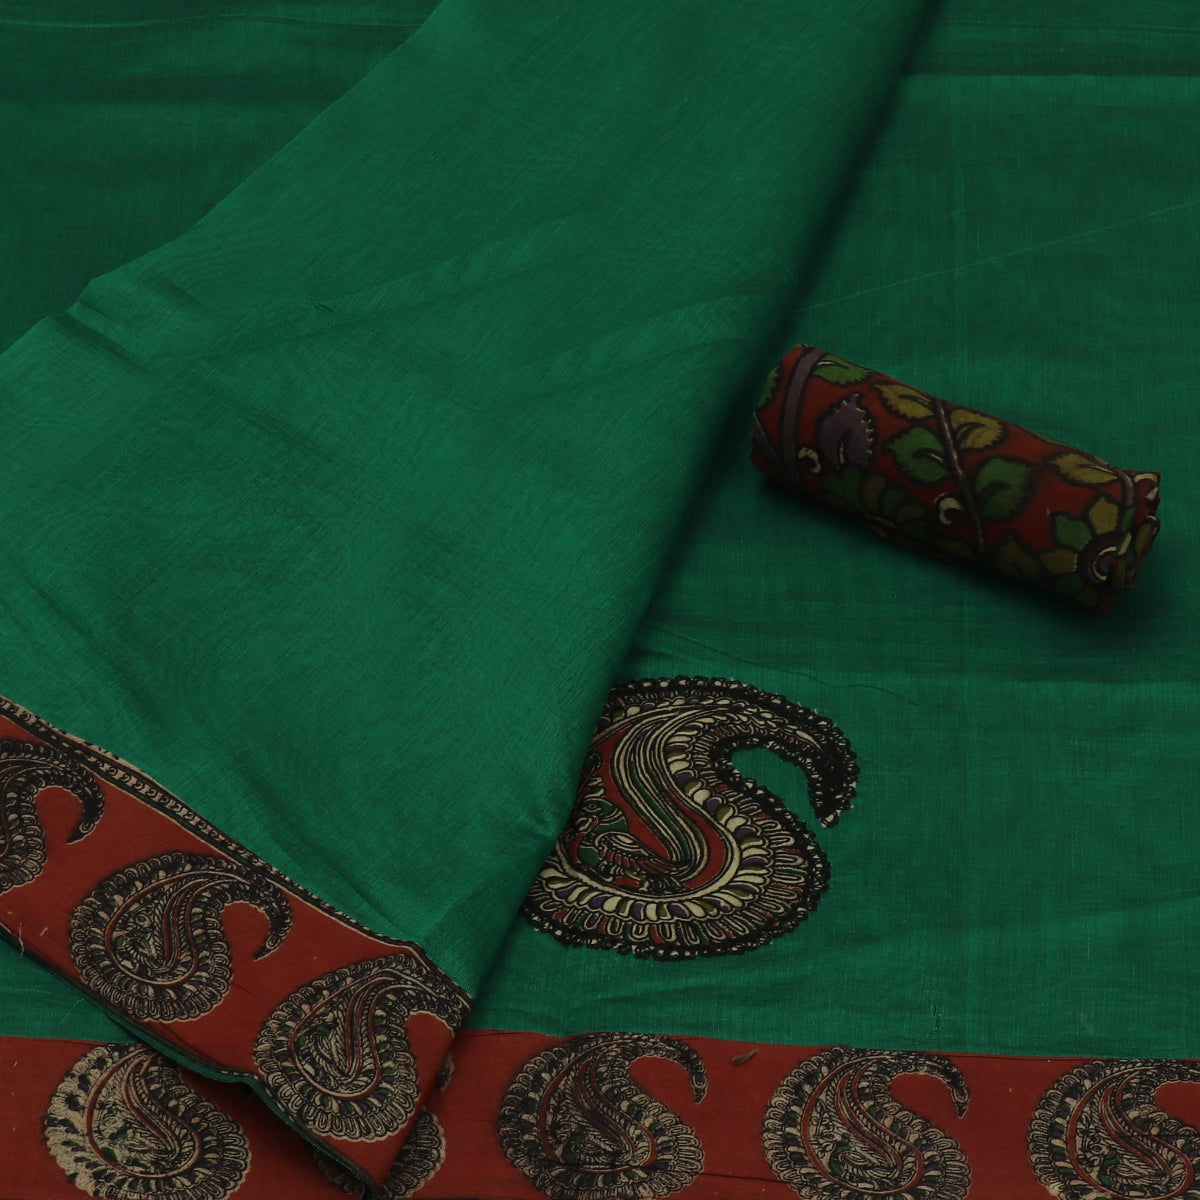 Kalamkari Saree Green with kalamkari applique work